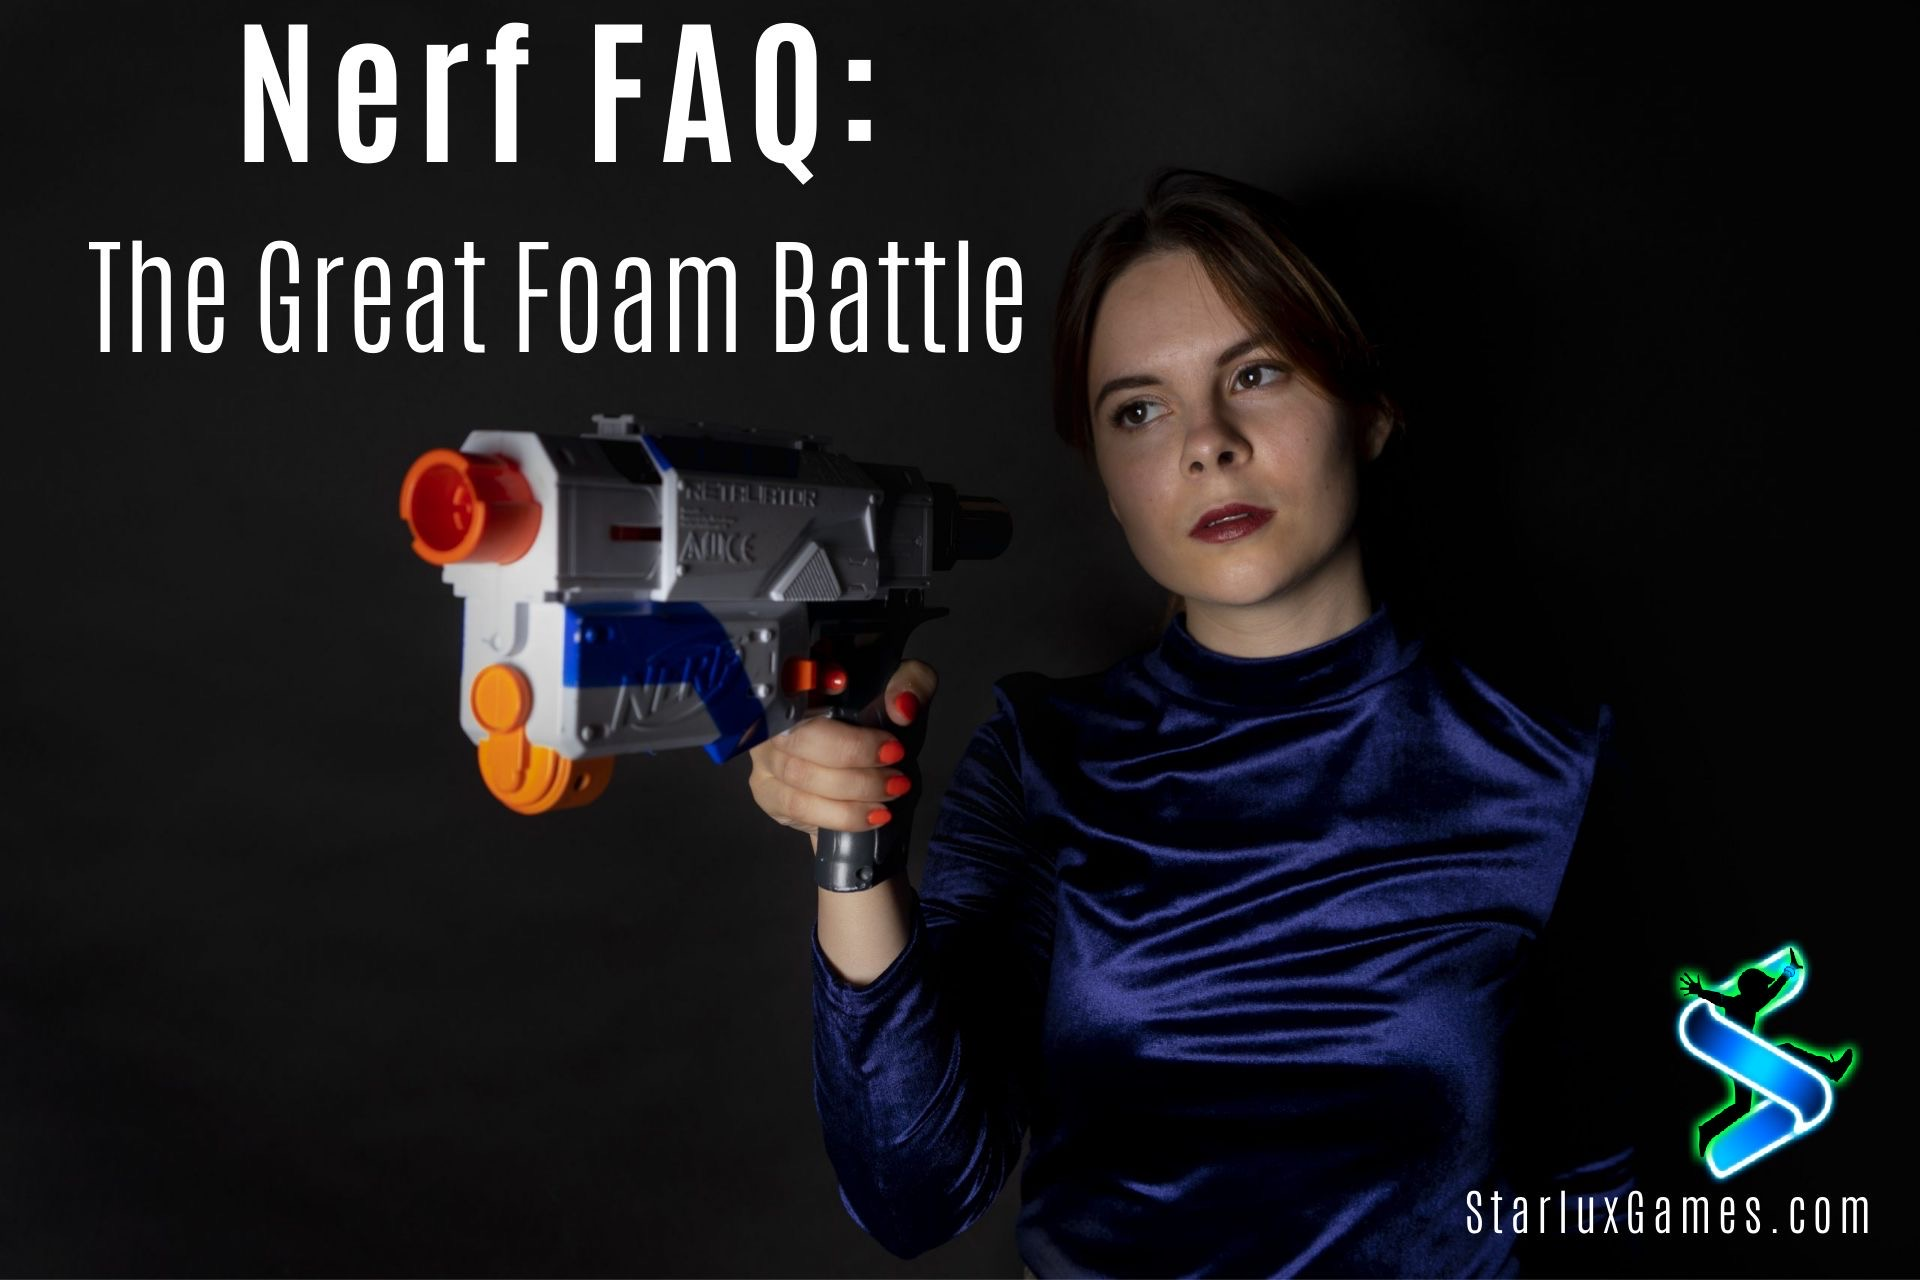 "A woman holding a Nerf gun points it at someone beyond frame. The text on the picture reads, ""Nerf FAQ: The Great Foam Battle."""